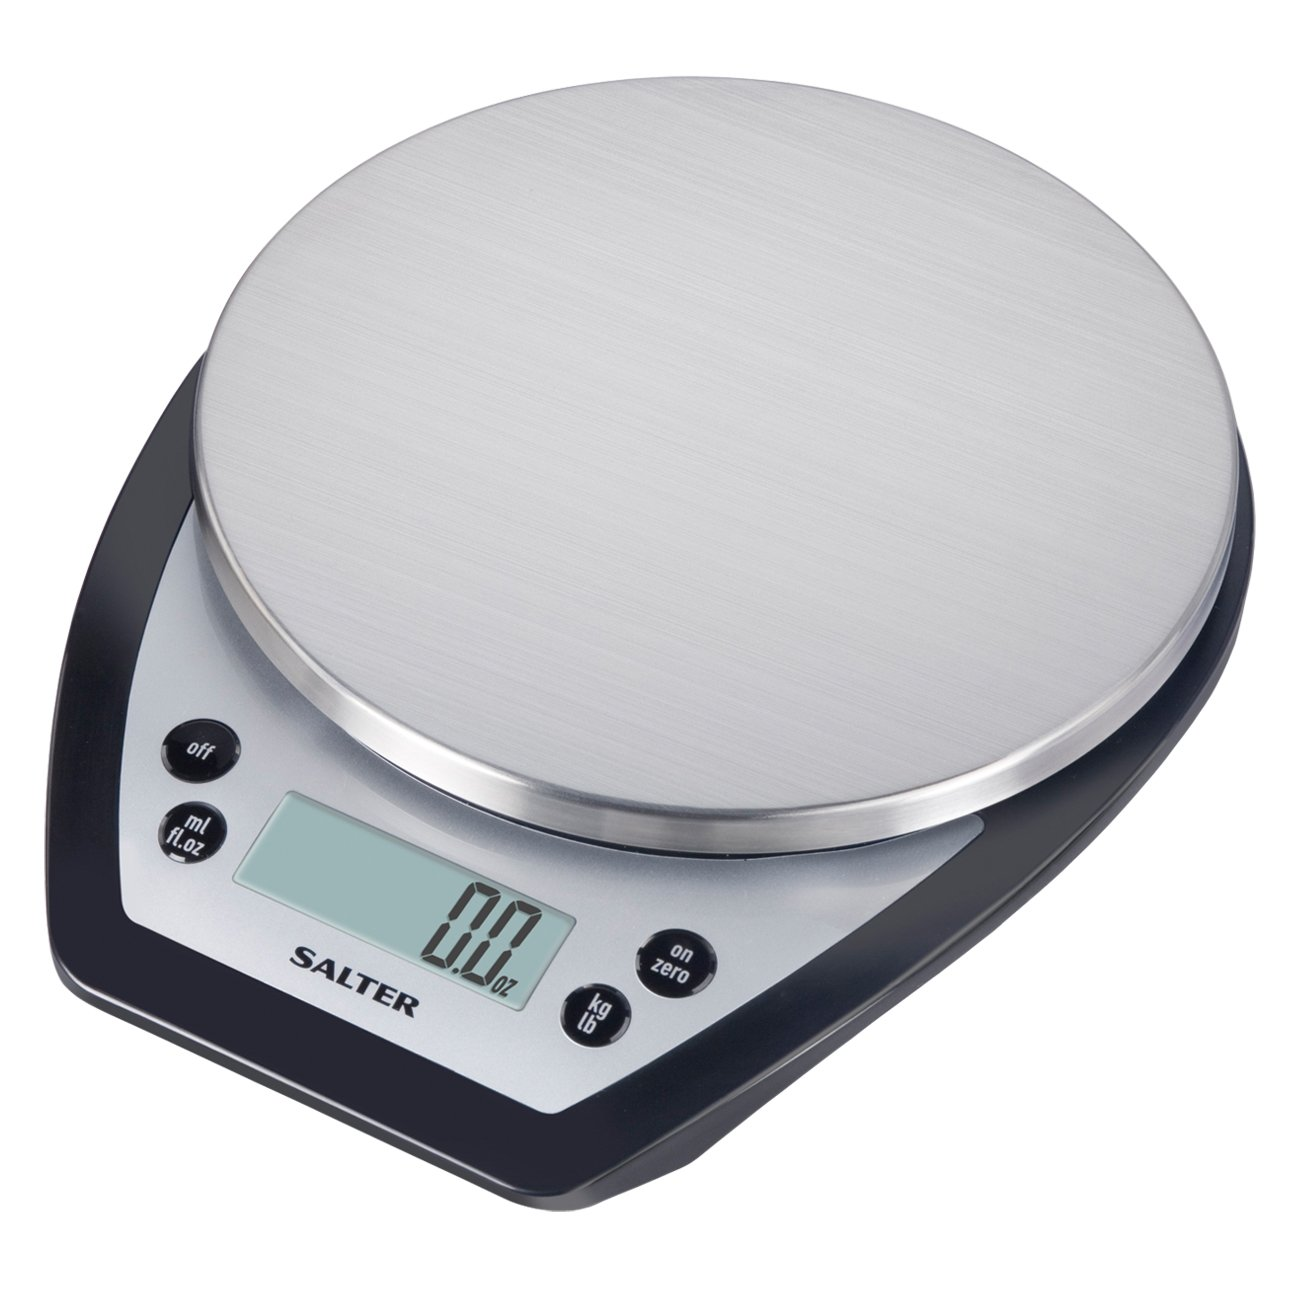 Digital Kitchen Scale: Salter 1020BKSS Aquatronic Digital Kitchen Scale